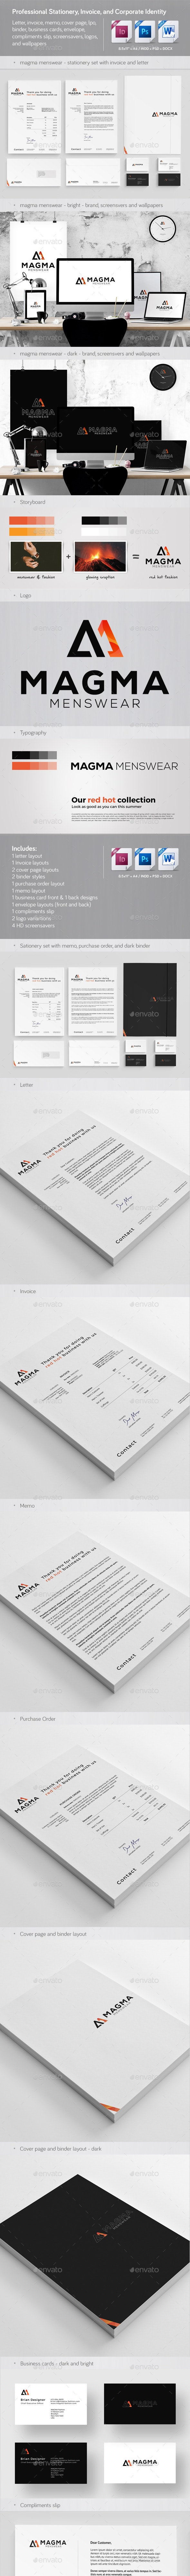 Professional Stationery, Invoice, and Corporate Identity - Stationery Print Templates